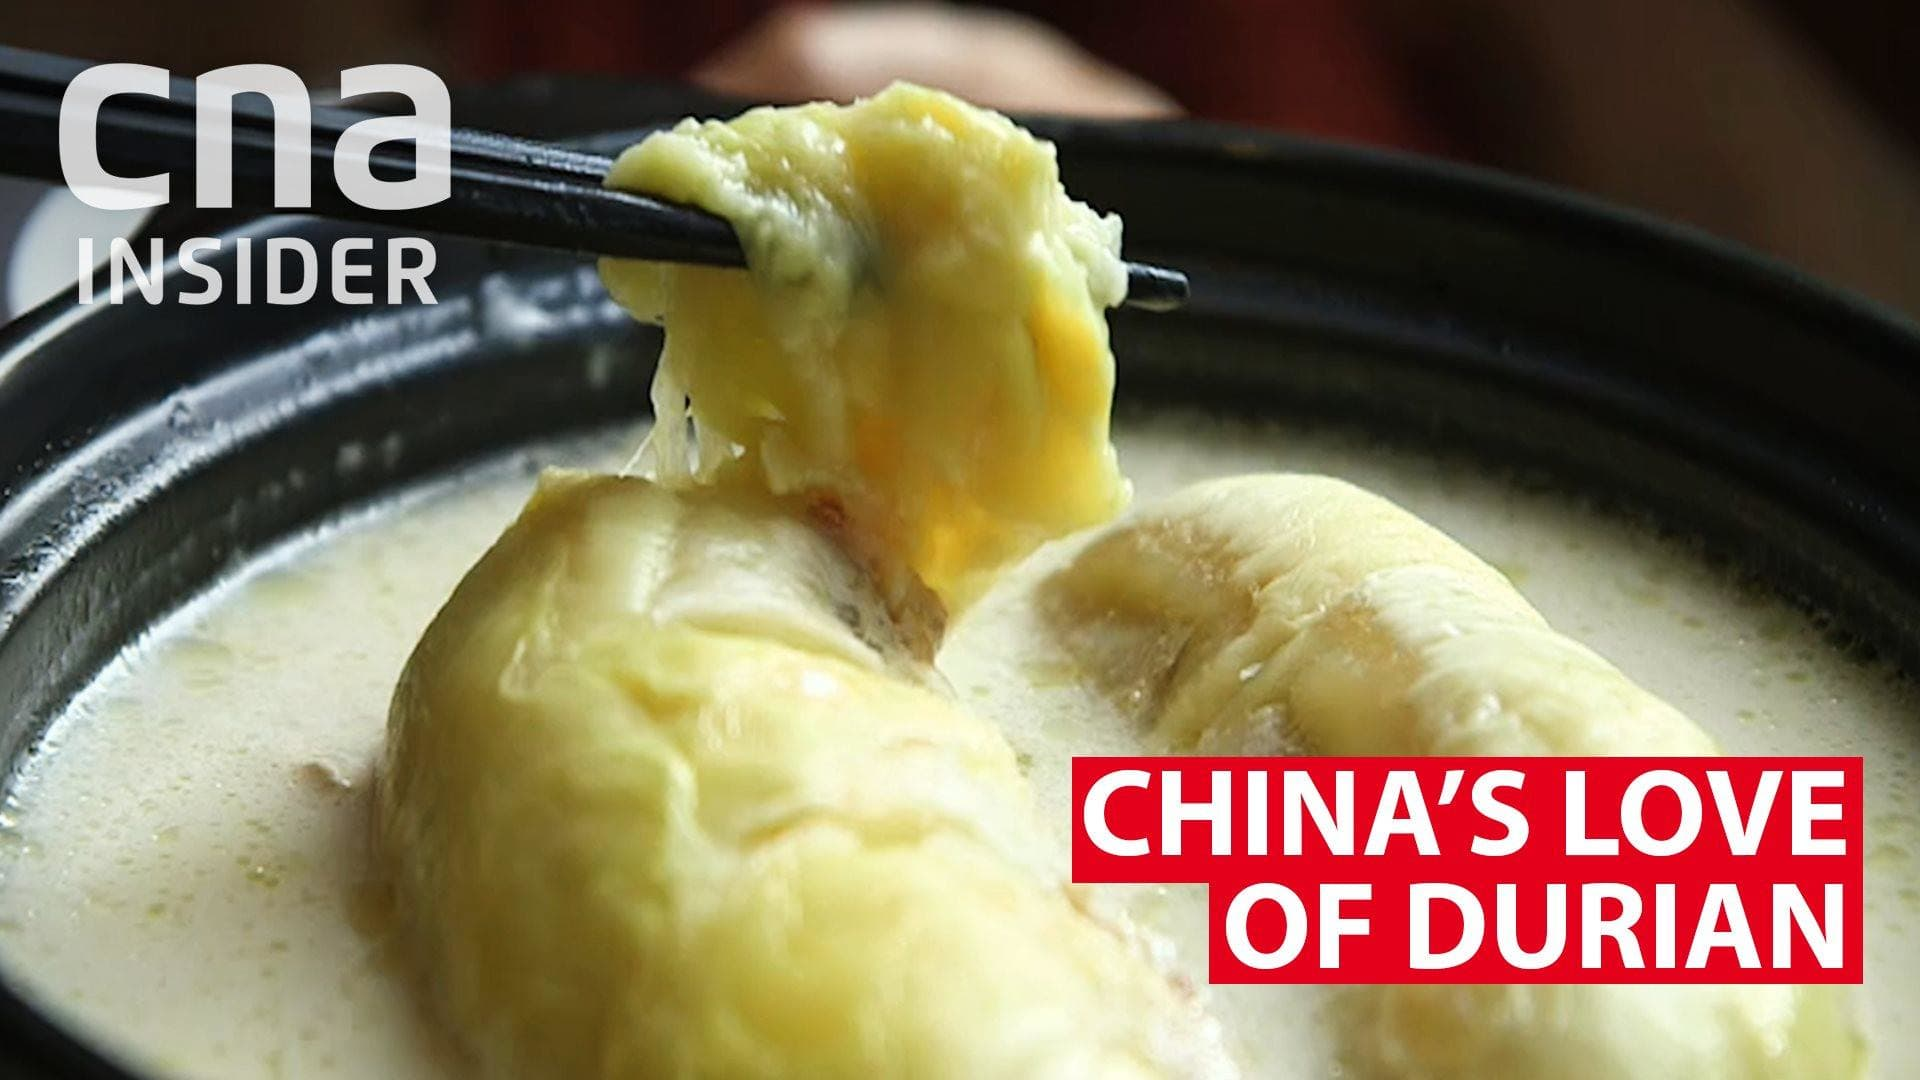 China's love of durian